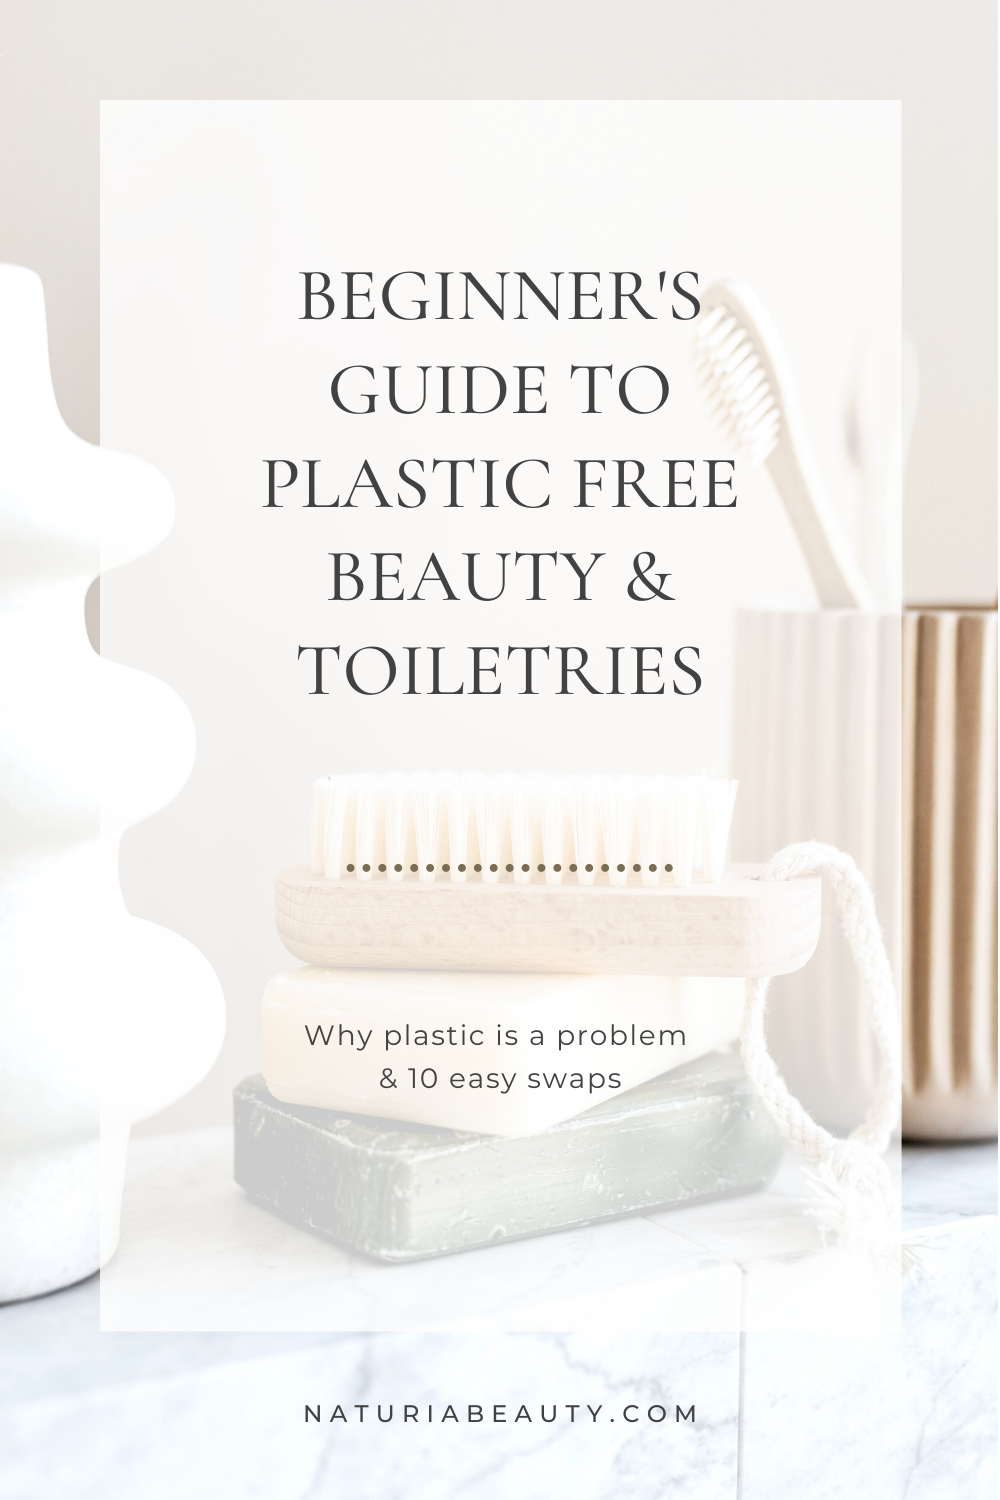 Learn why plastic is a problem and 10 easy swaps to make for plastic free beauty and toiletries. Click to read more